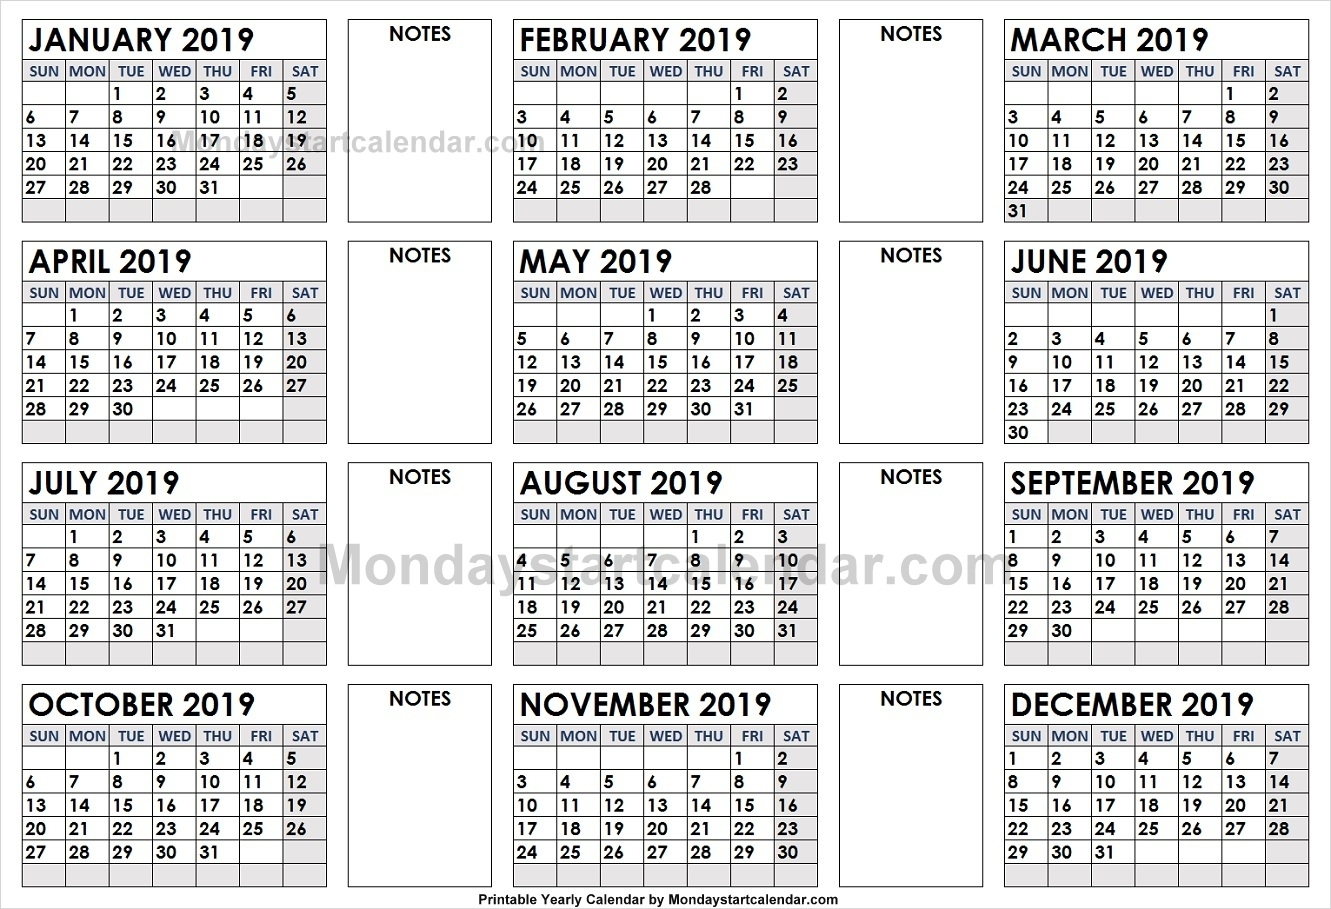 2019 Yearly Calendar With Blank Notes | Editable 2019 Yearly